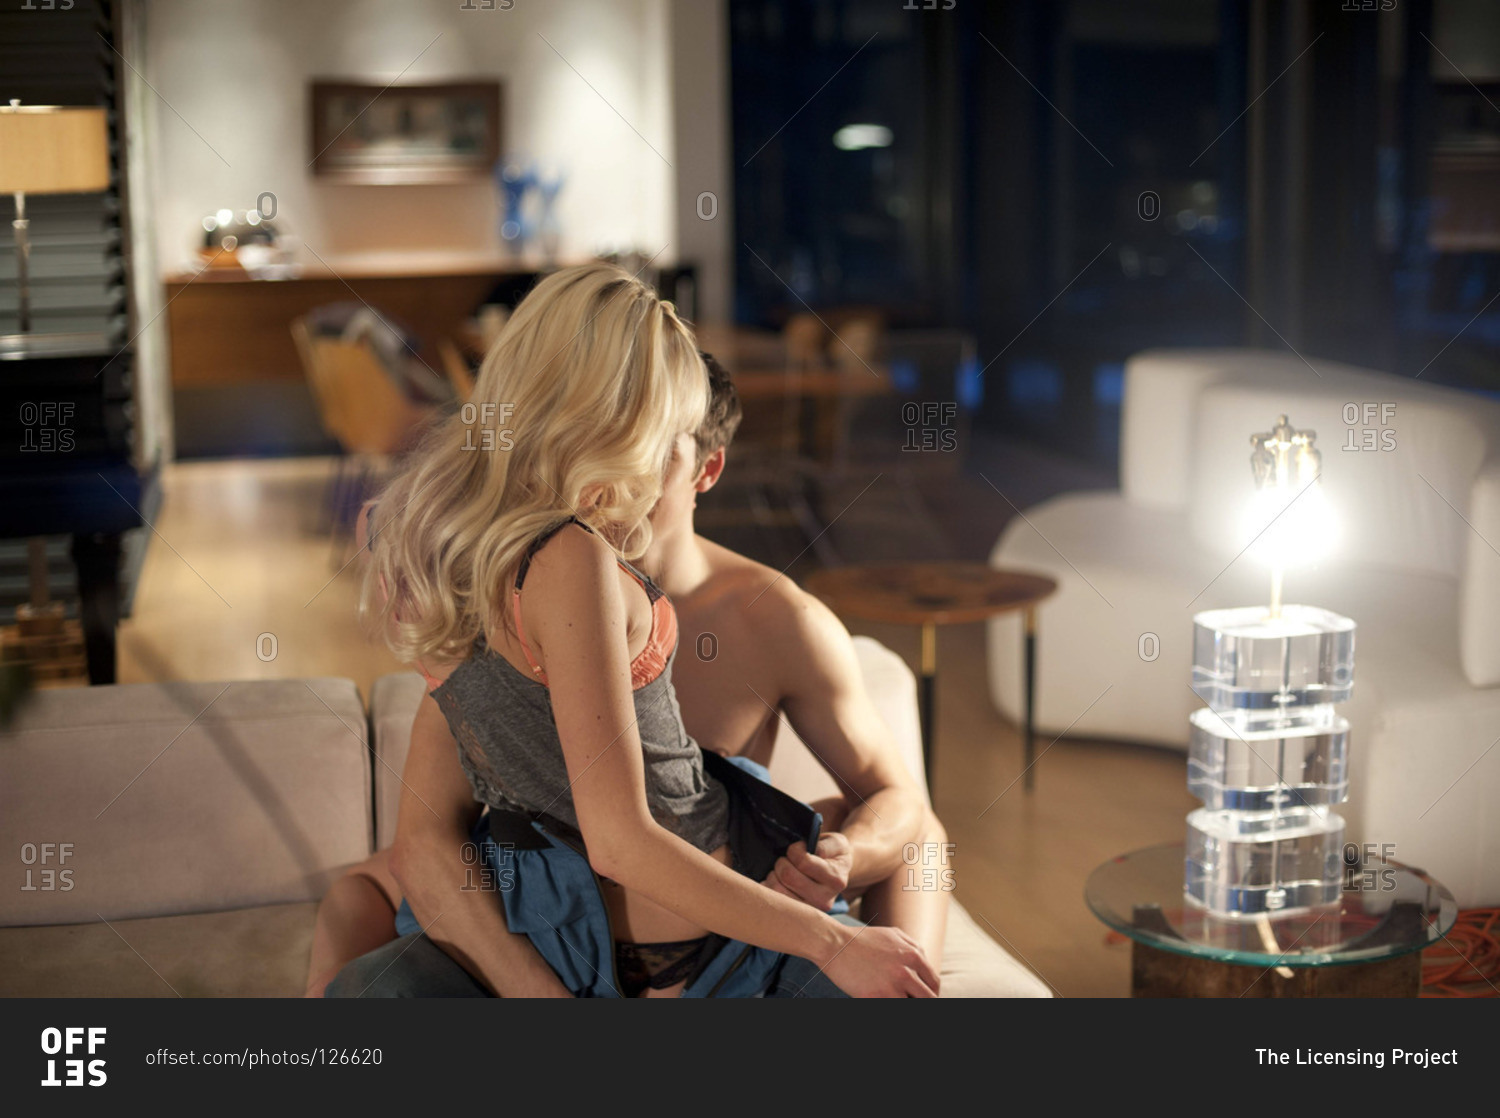 Man undressing His Woman in the Sofa Stock Photo - Offset-5603